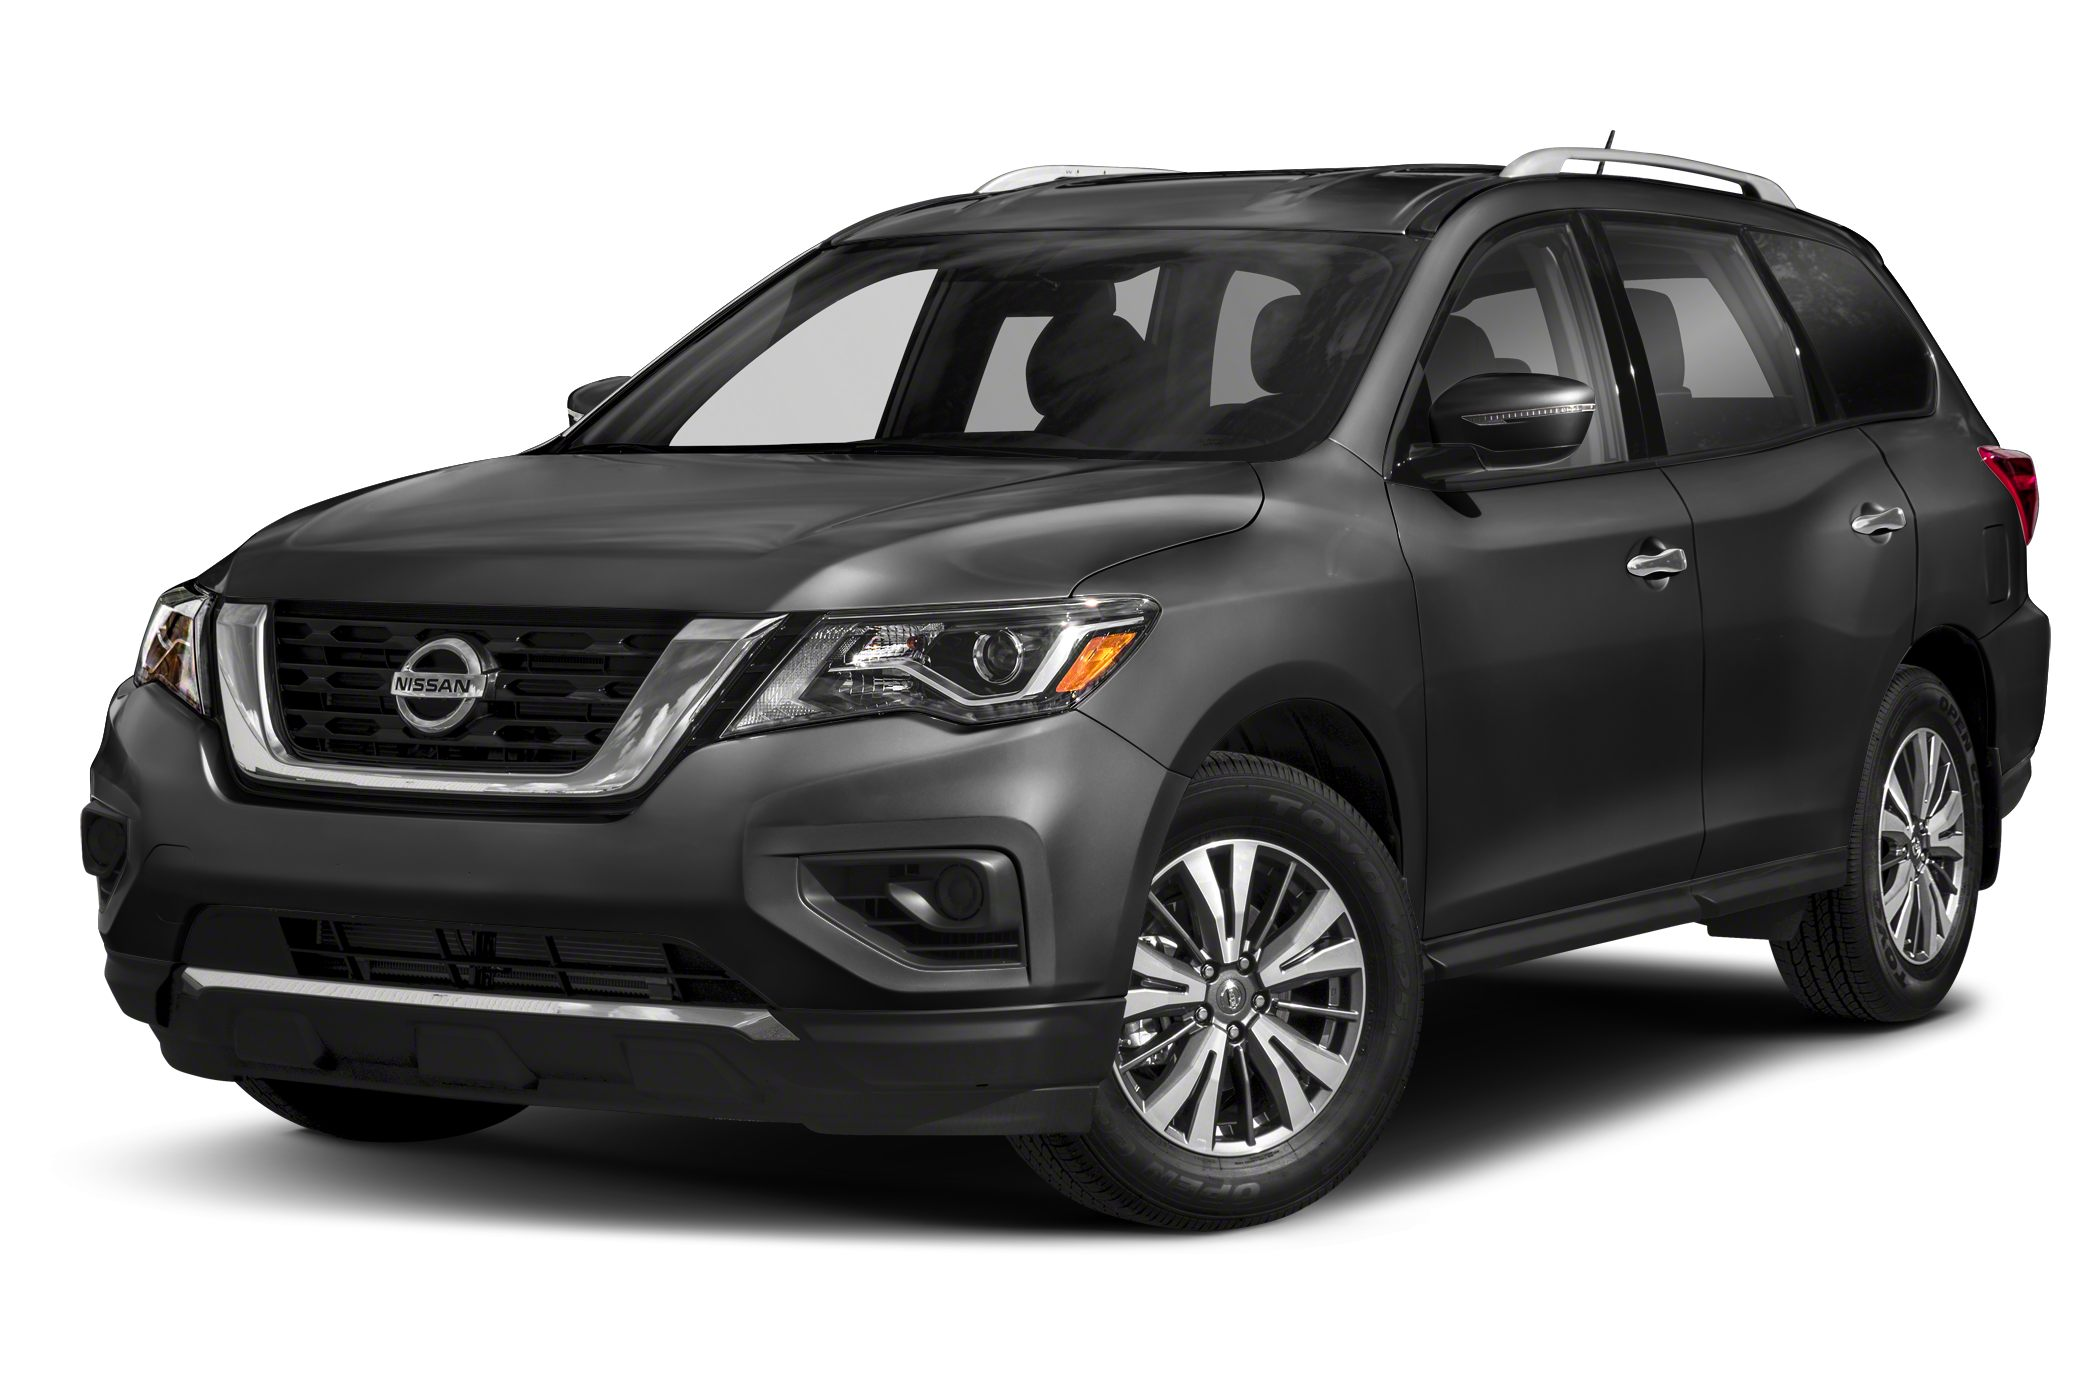 2018 Nissan Pathfinder Styles Amp Features Highlights